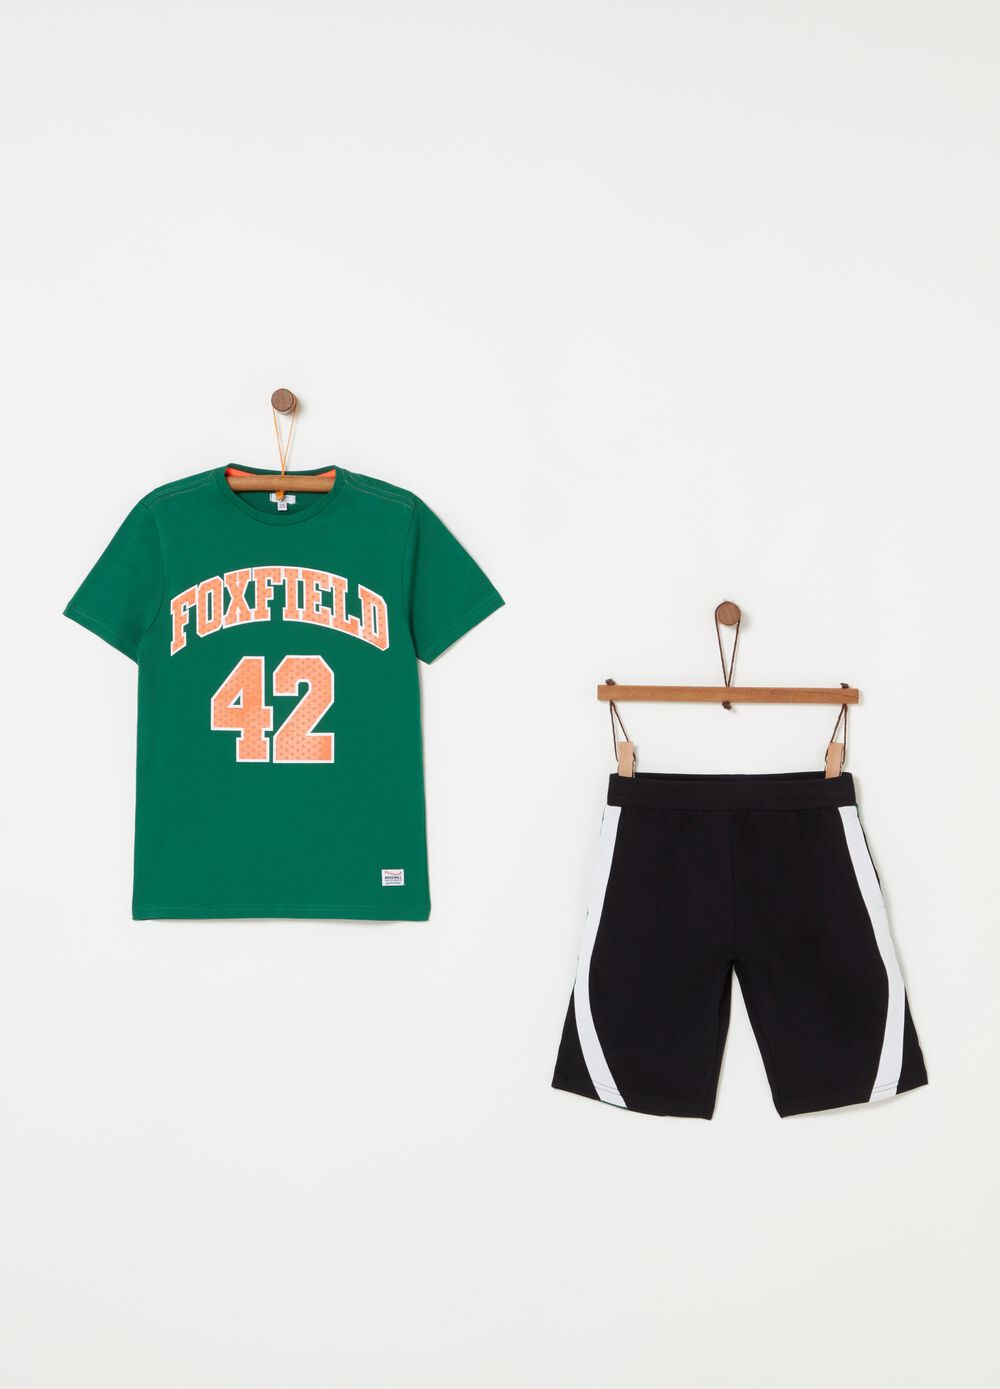 Jogging set consisting of T-shirt and shorts in 100% cotton